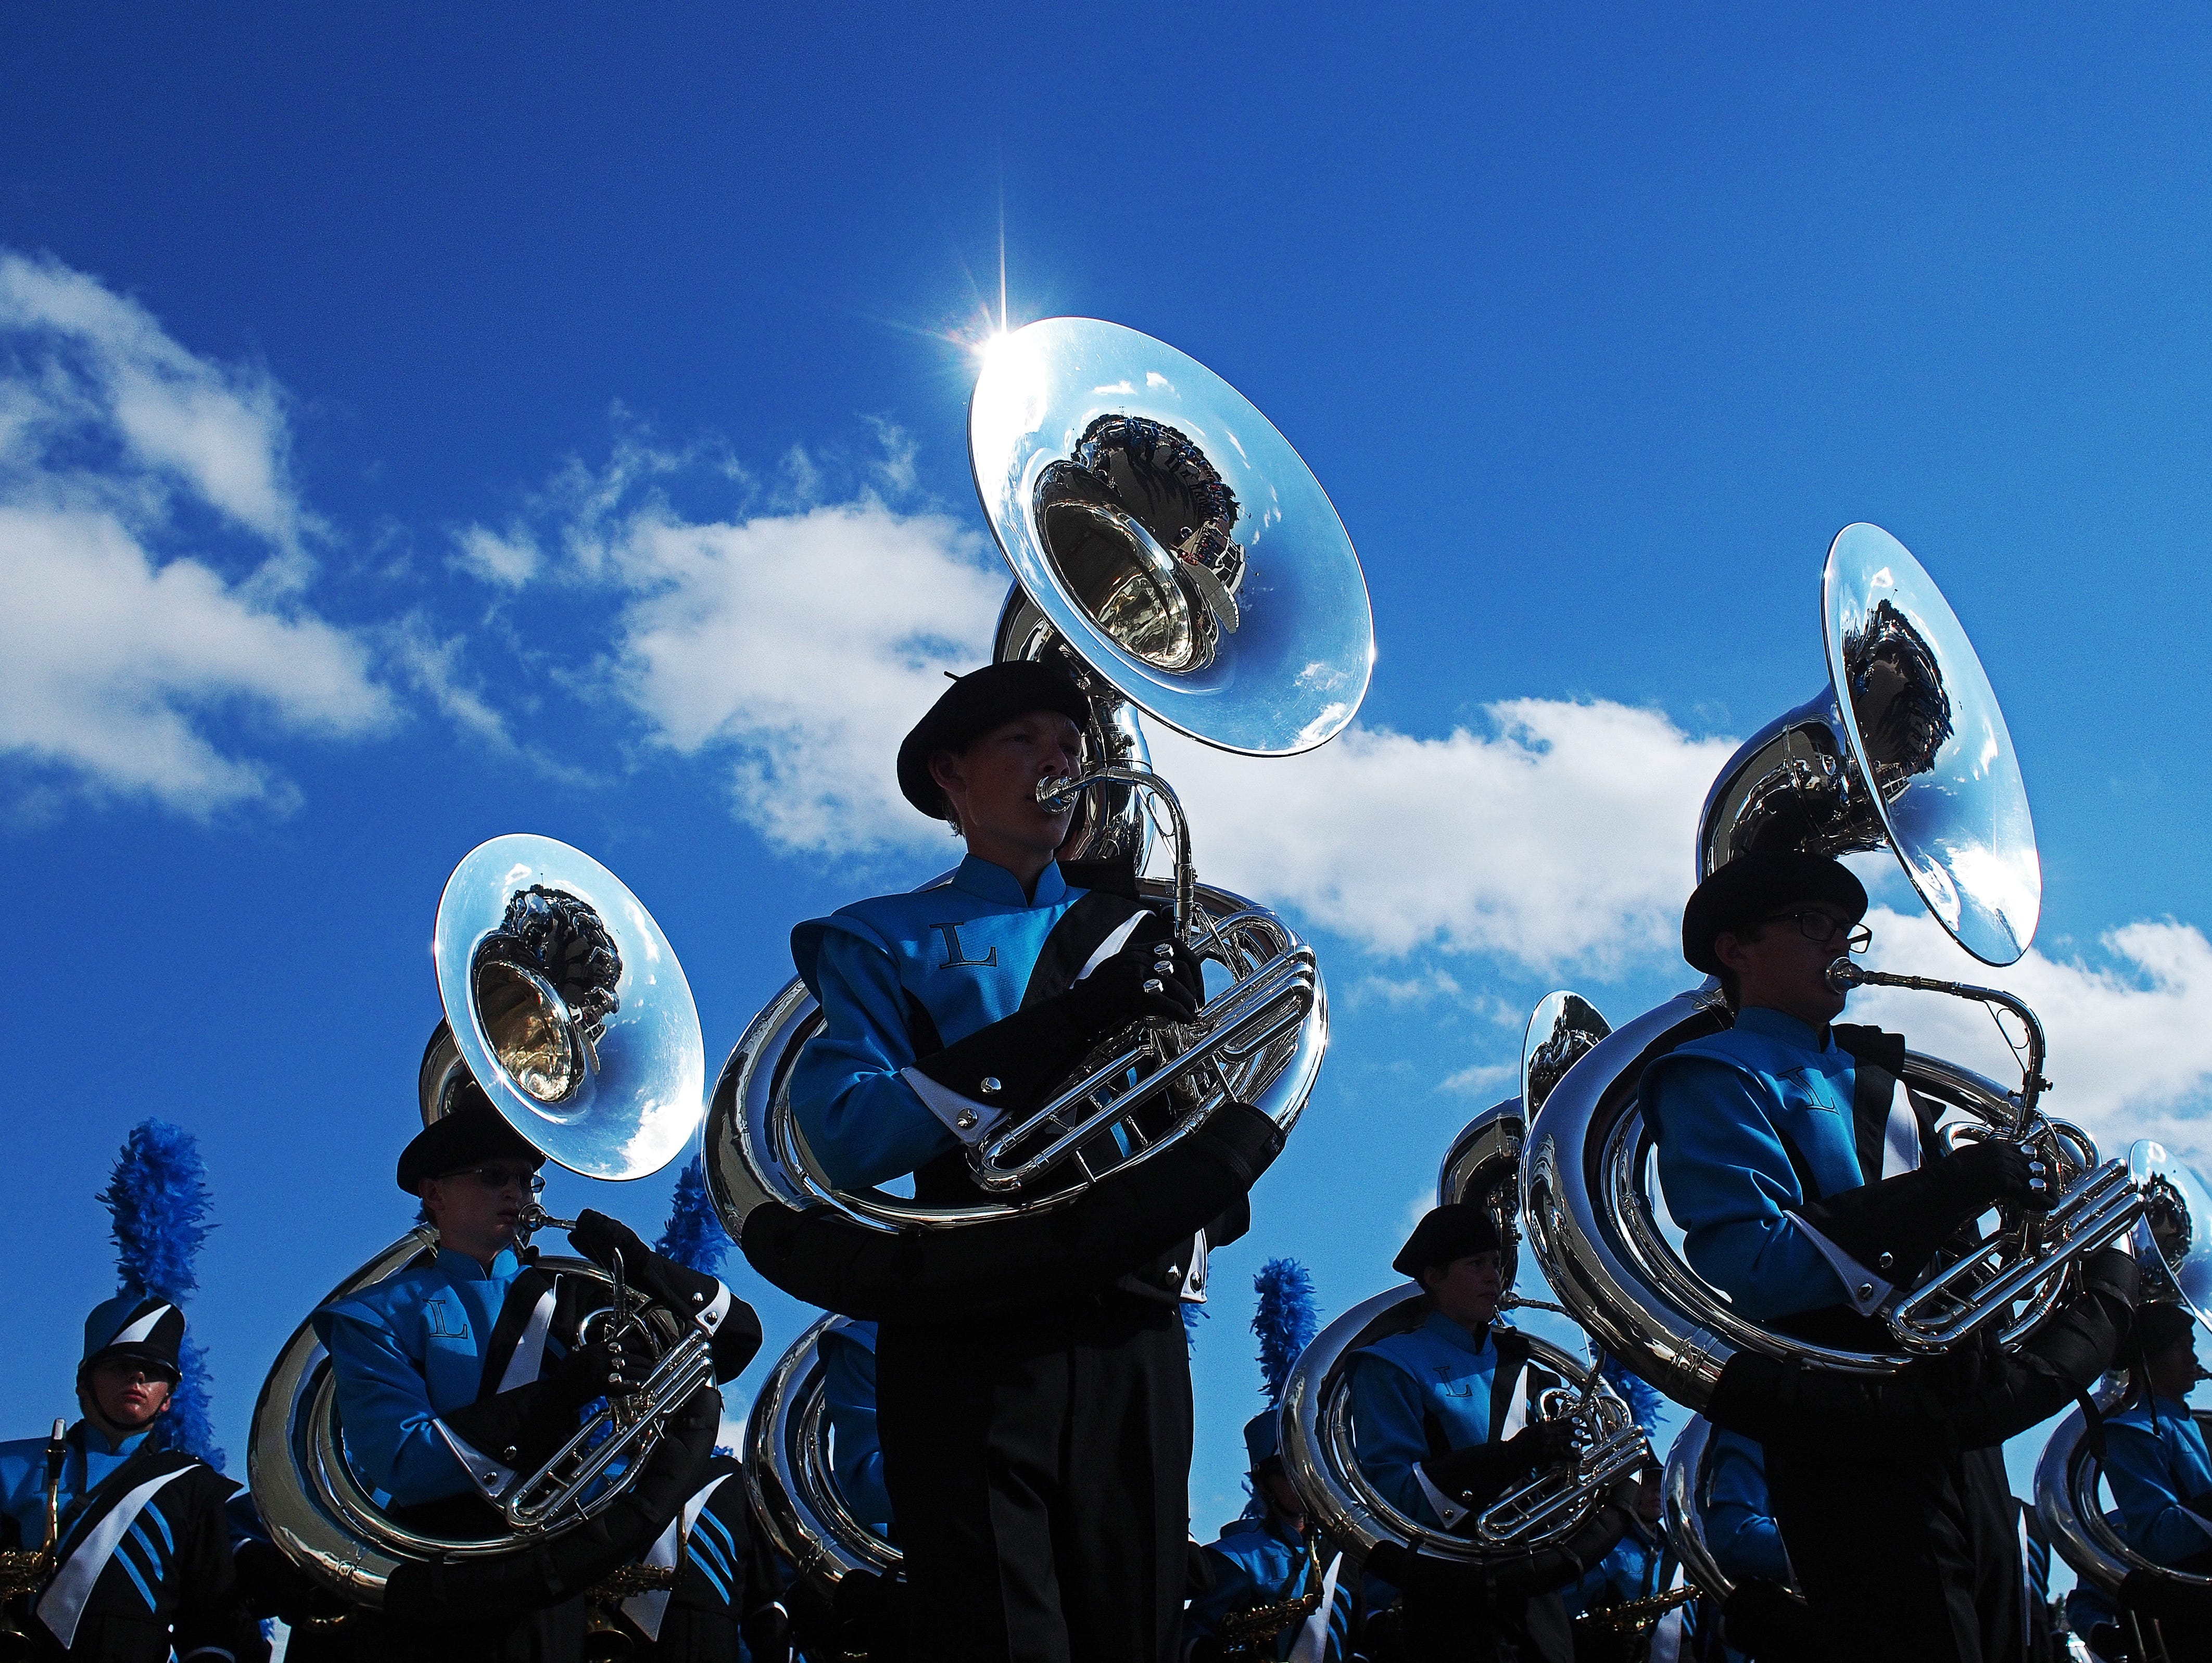 The Lincoln High School marching band performs before a football game between Lincoln and Rapid City Stevens Saturday, Aug. 27, 2016, at Howard Wood Field in Sioux Falls.